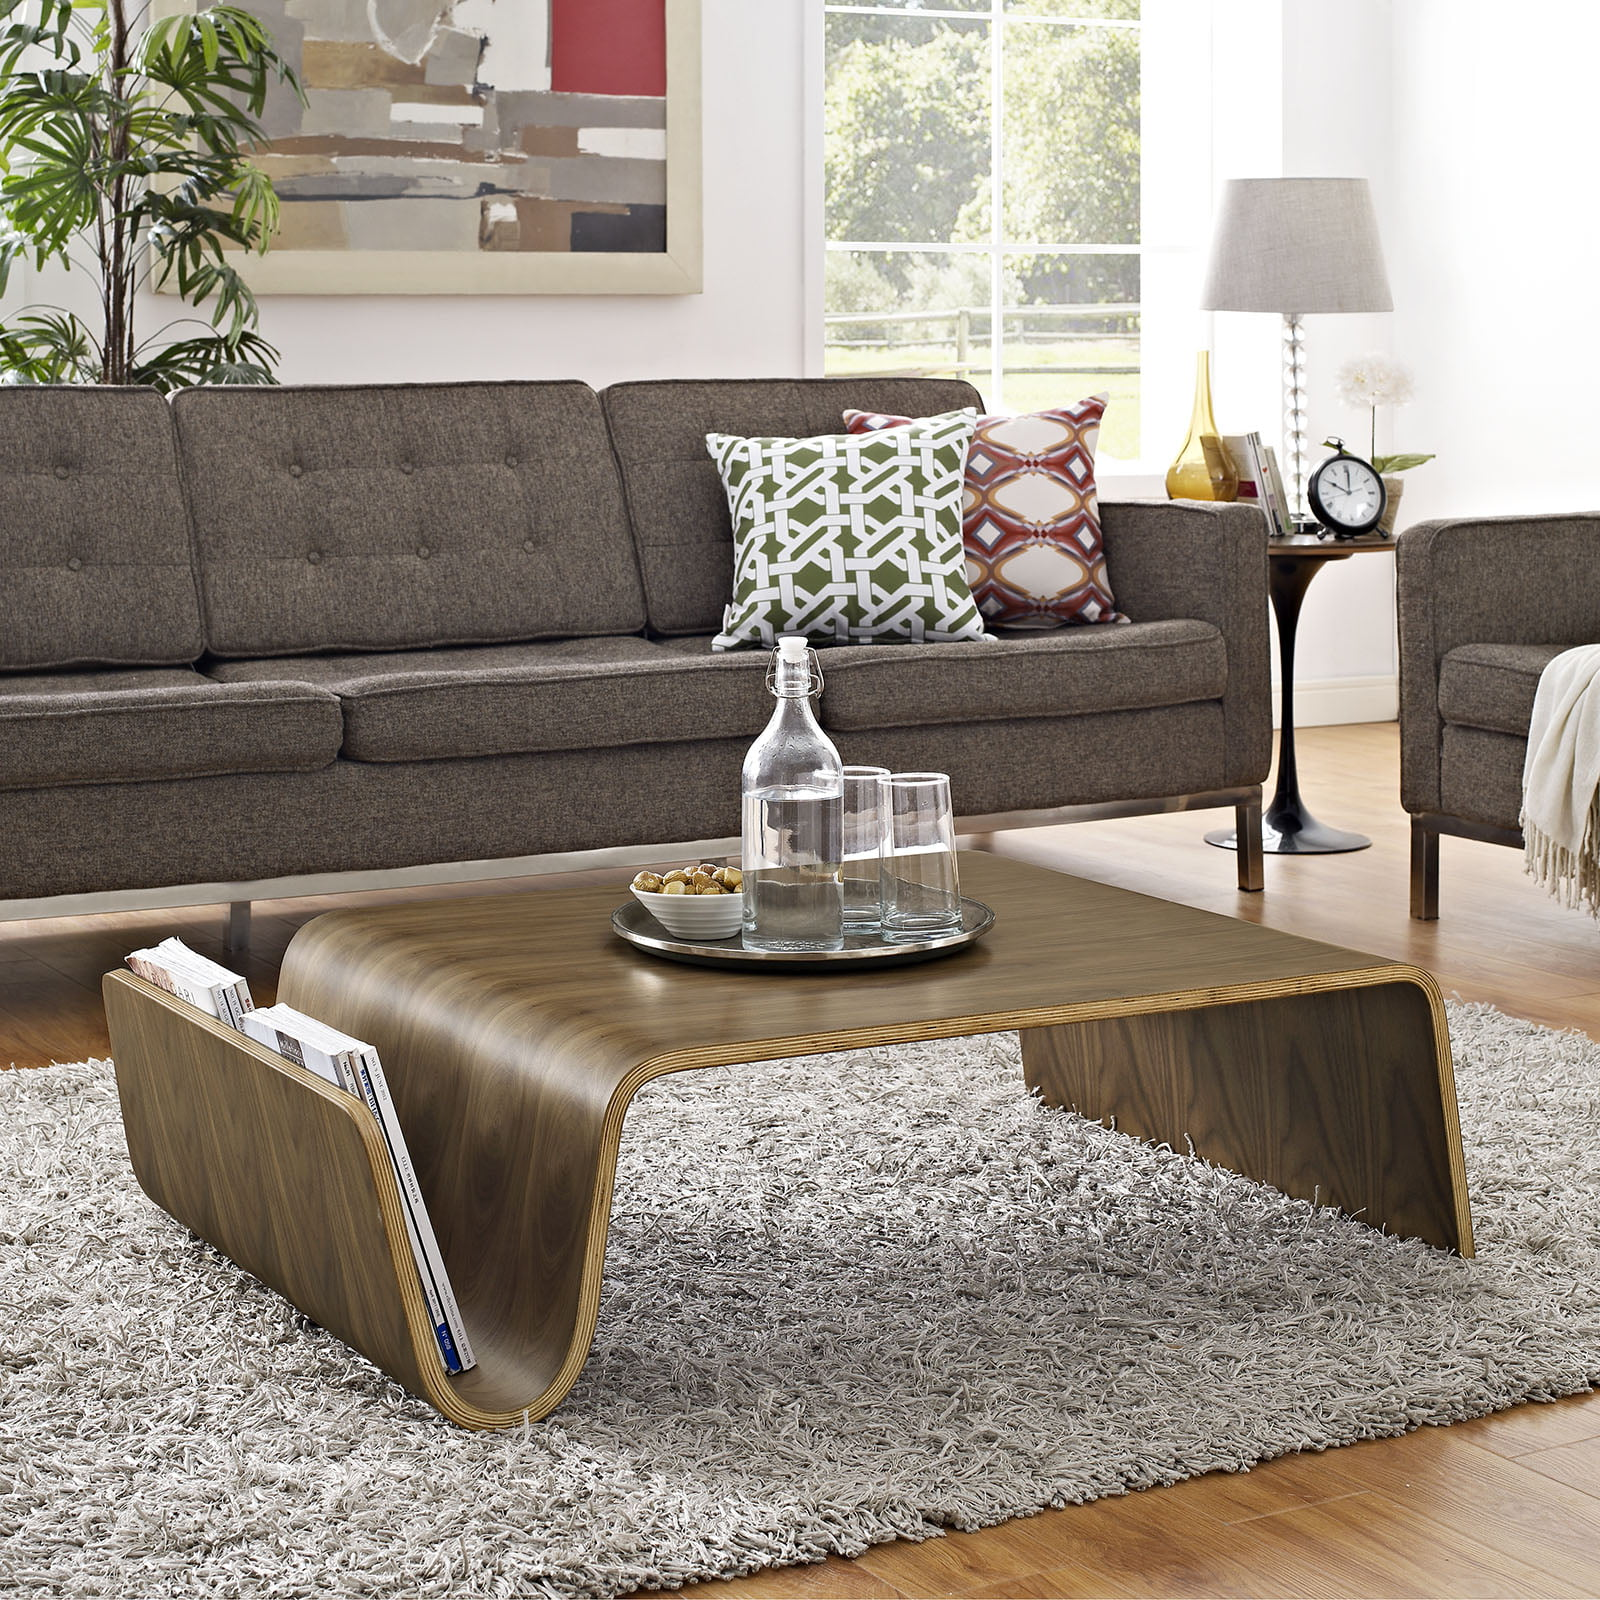 Scando Plywood Coffee Table FurnishPlus - Scando coffee table